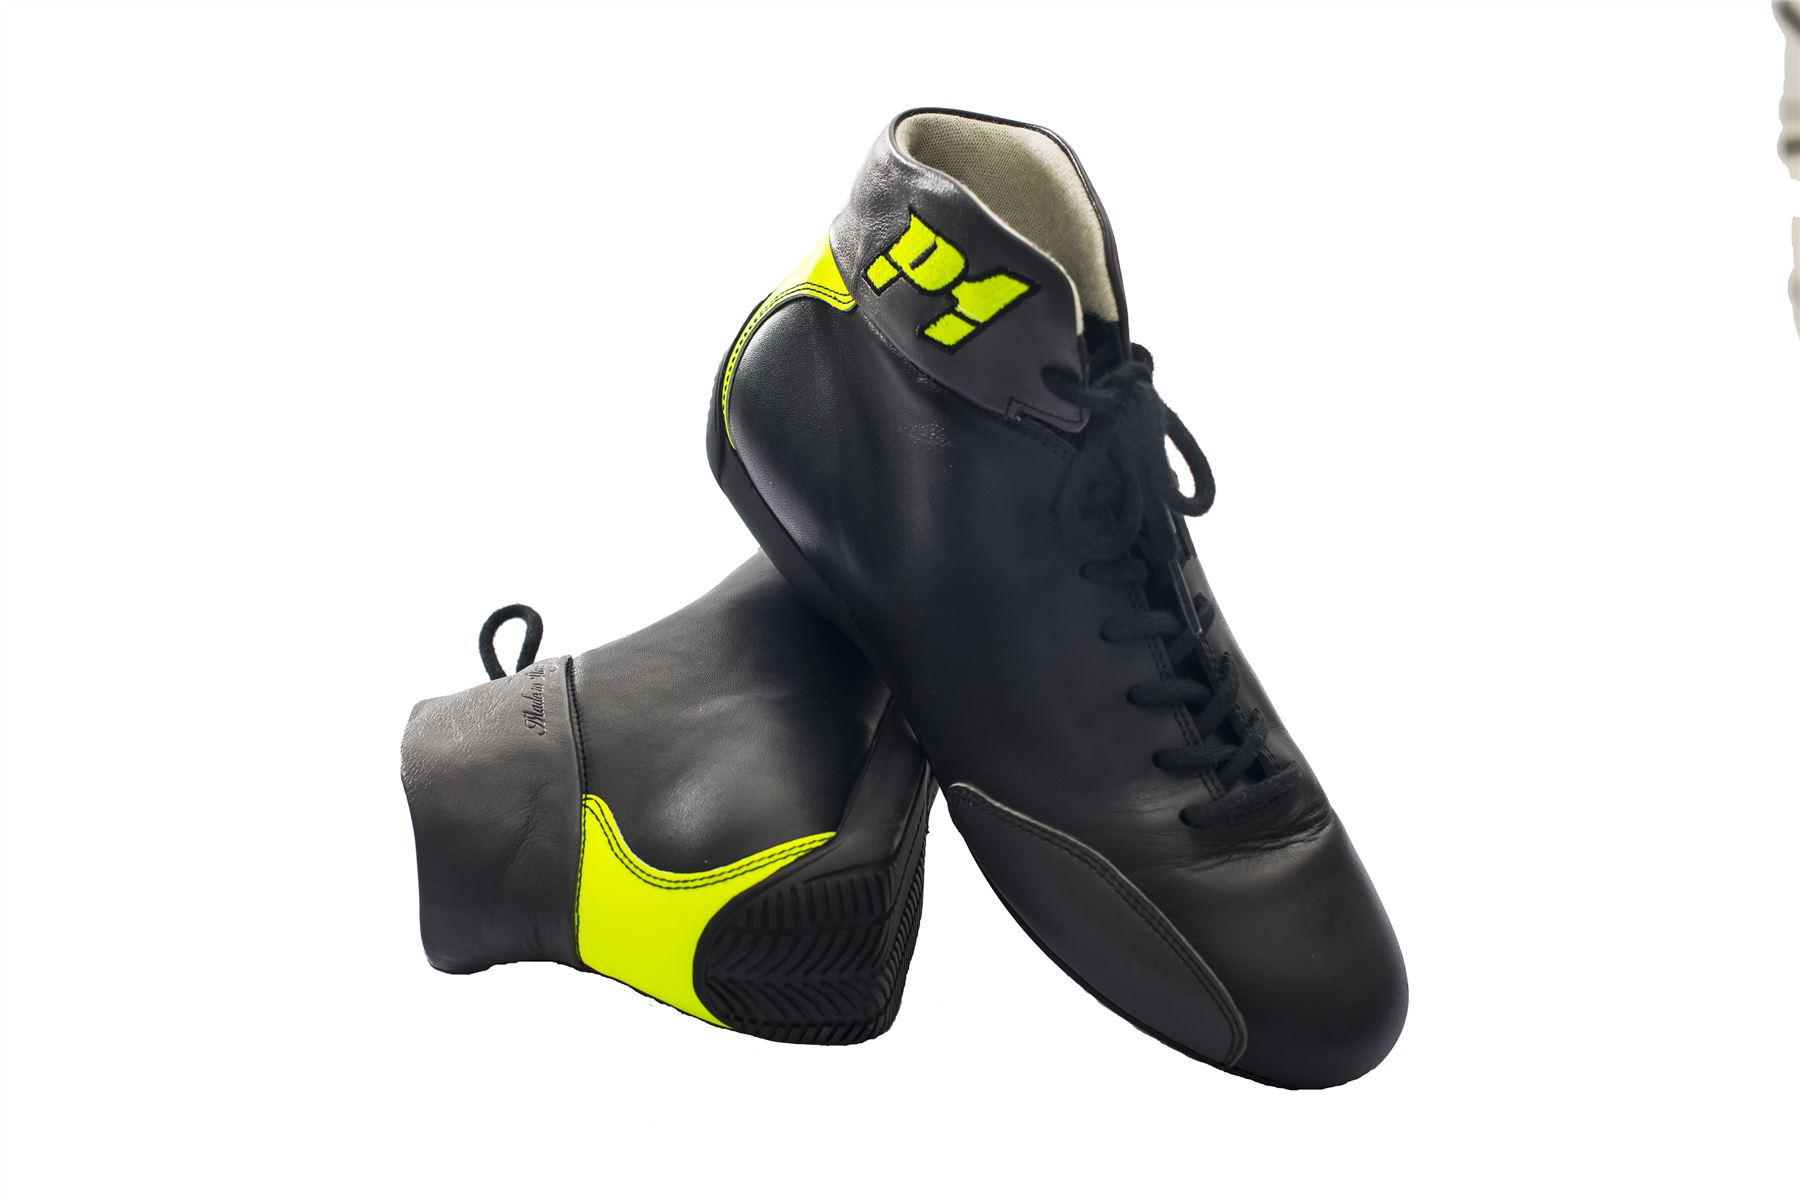 Indexbild 9 - P1 Racewear Monza FIA Approved Soft Leather Race, Rally Boots Black/Fluro